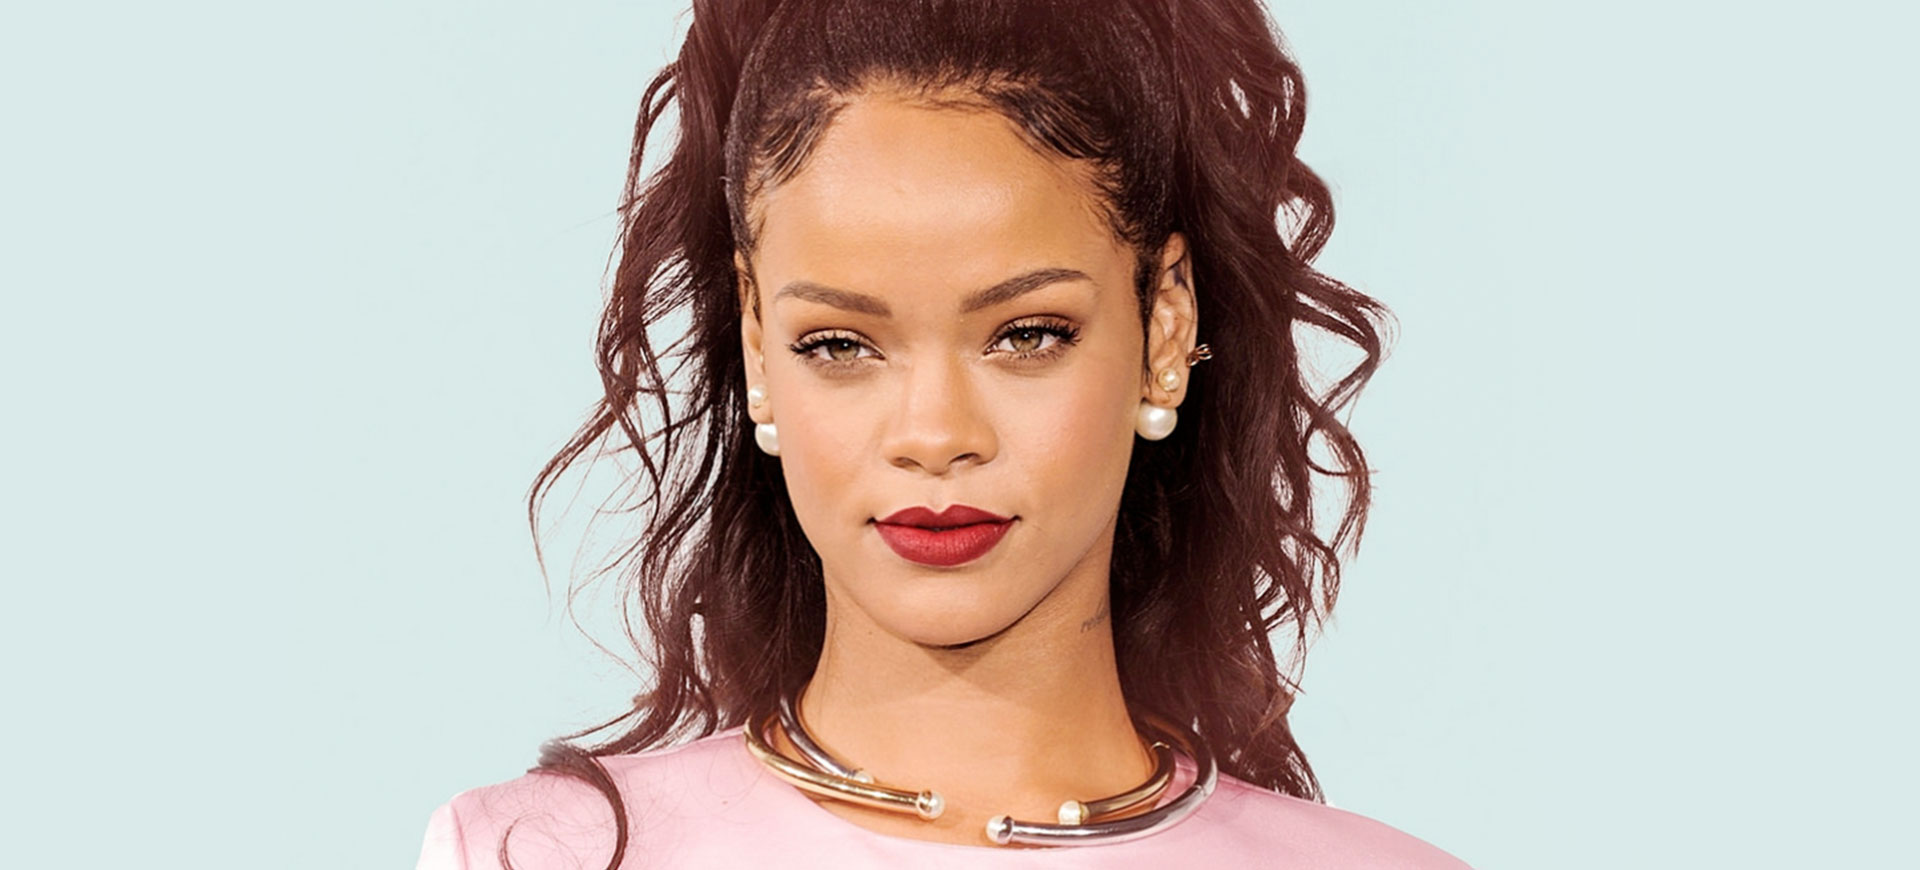 Rihanna Fenty Beauty sverige recension